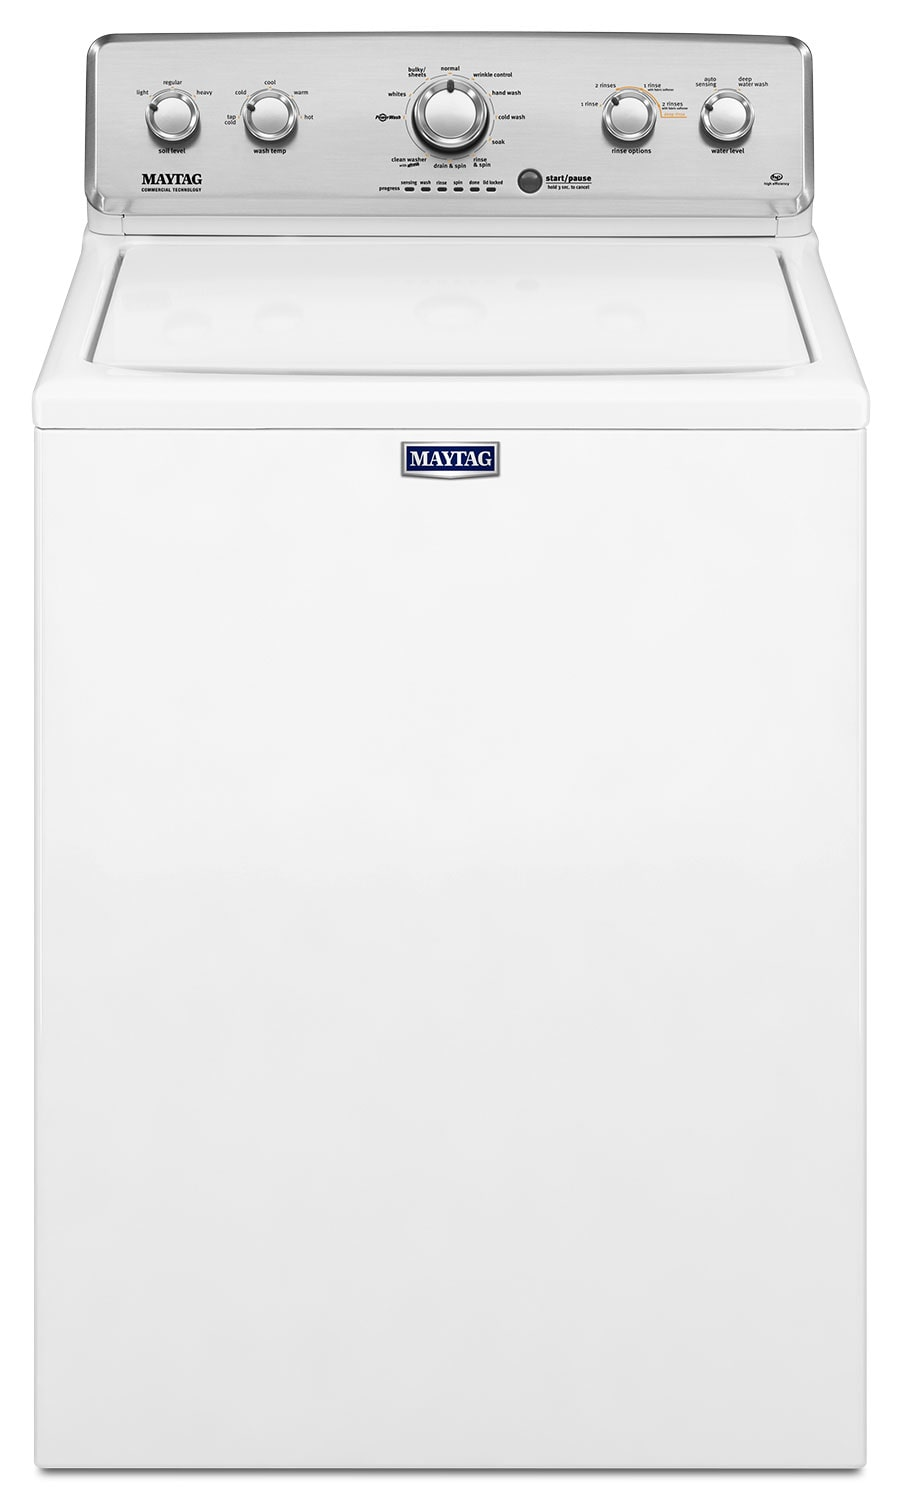 Washers and Dryers - Maytag White Top-Load Washer (4.2 Cu. Ft. IEC) - MVWC416FW